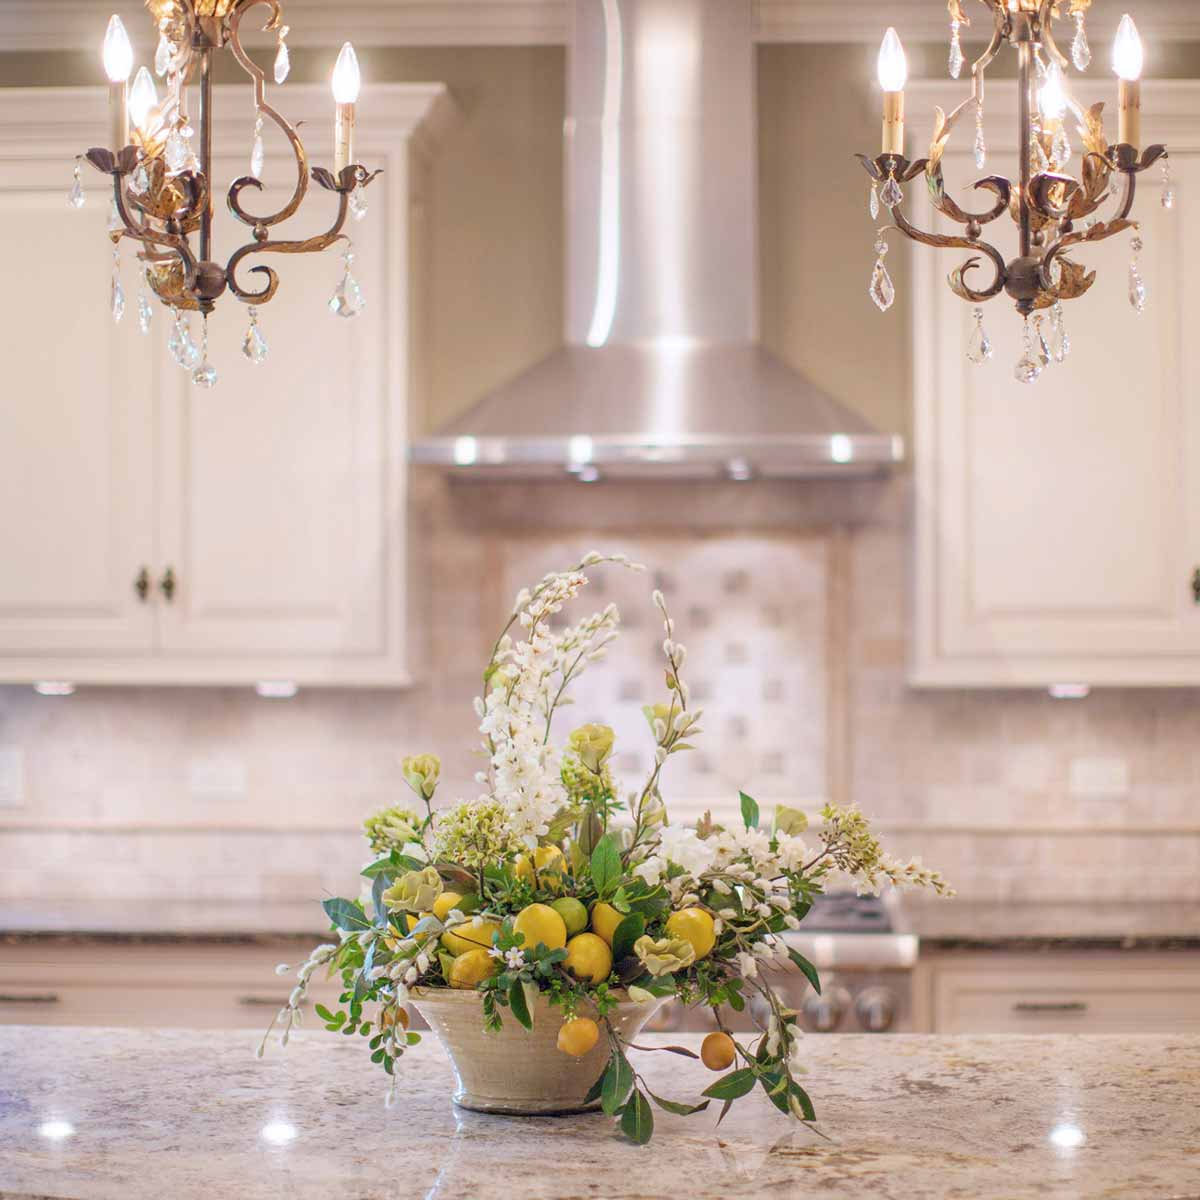 Silk floral seasonal decor linly designs for Kitchen decoration with flowers